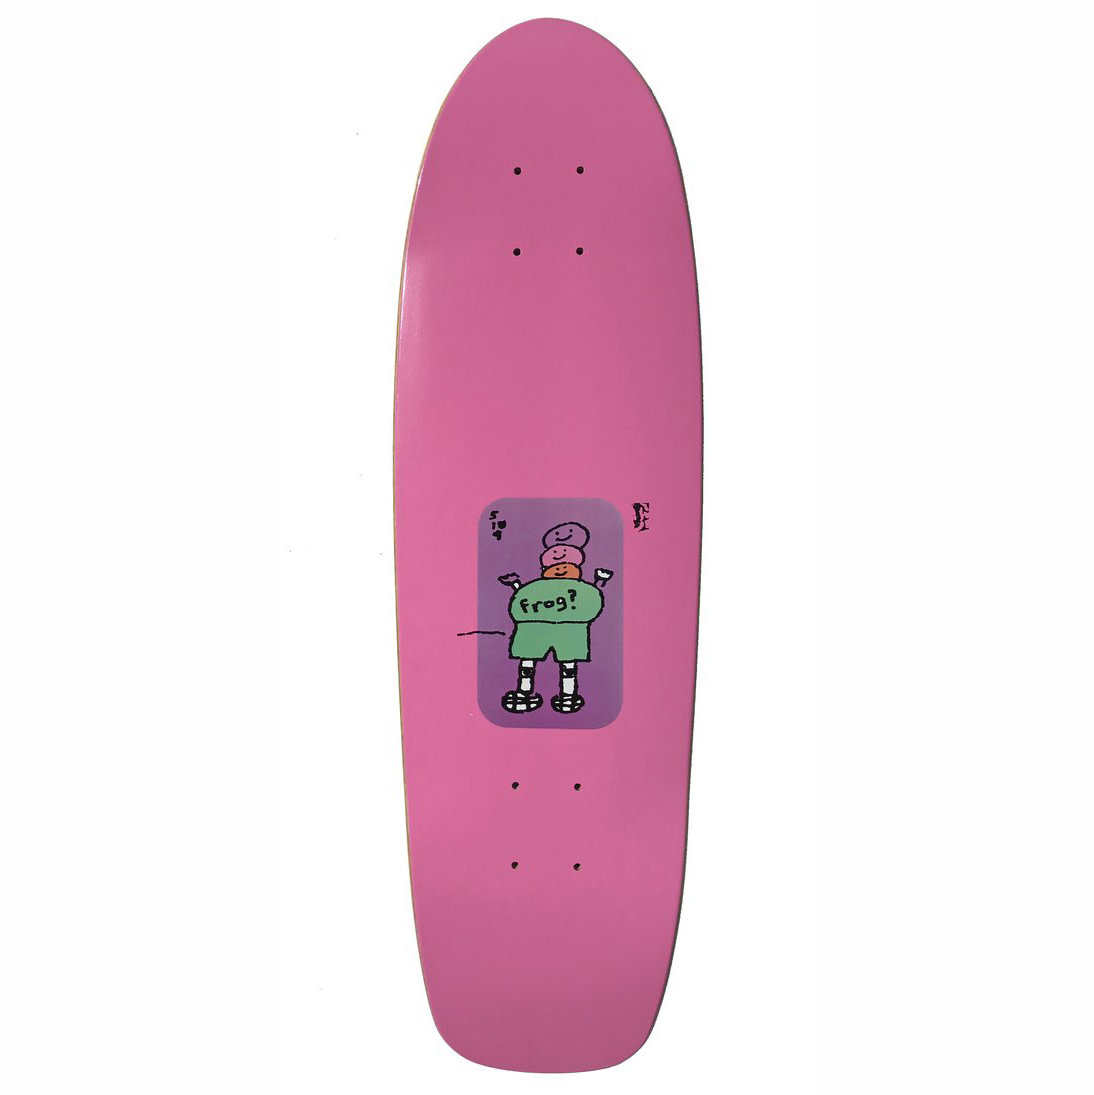 Frog Skateboards Mini Pink 8.0